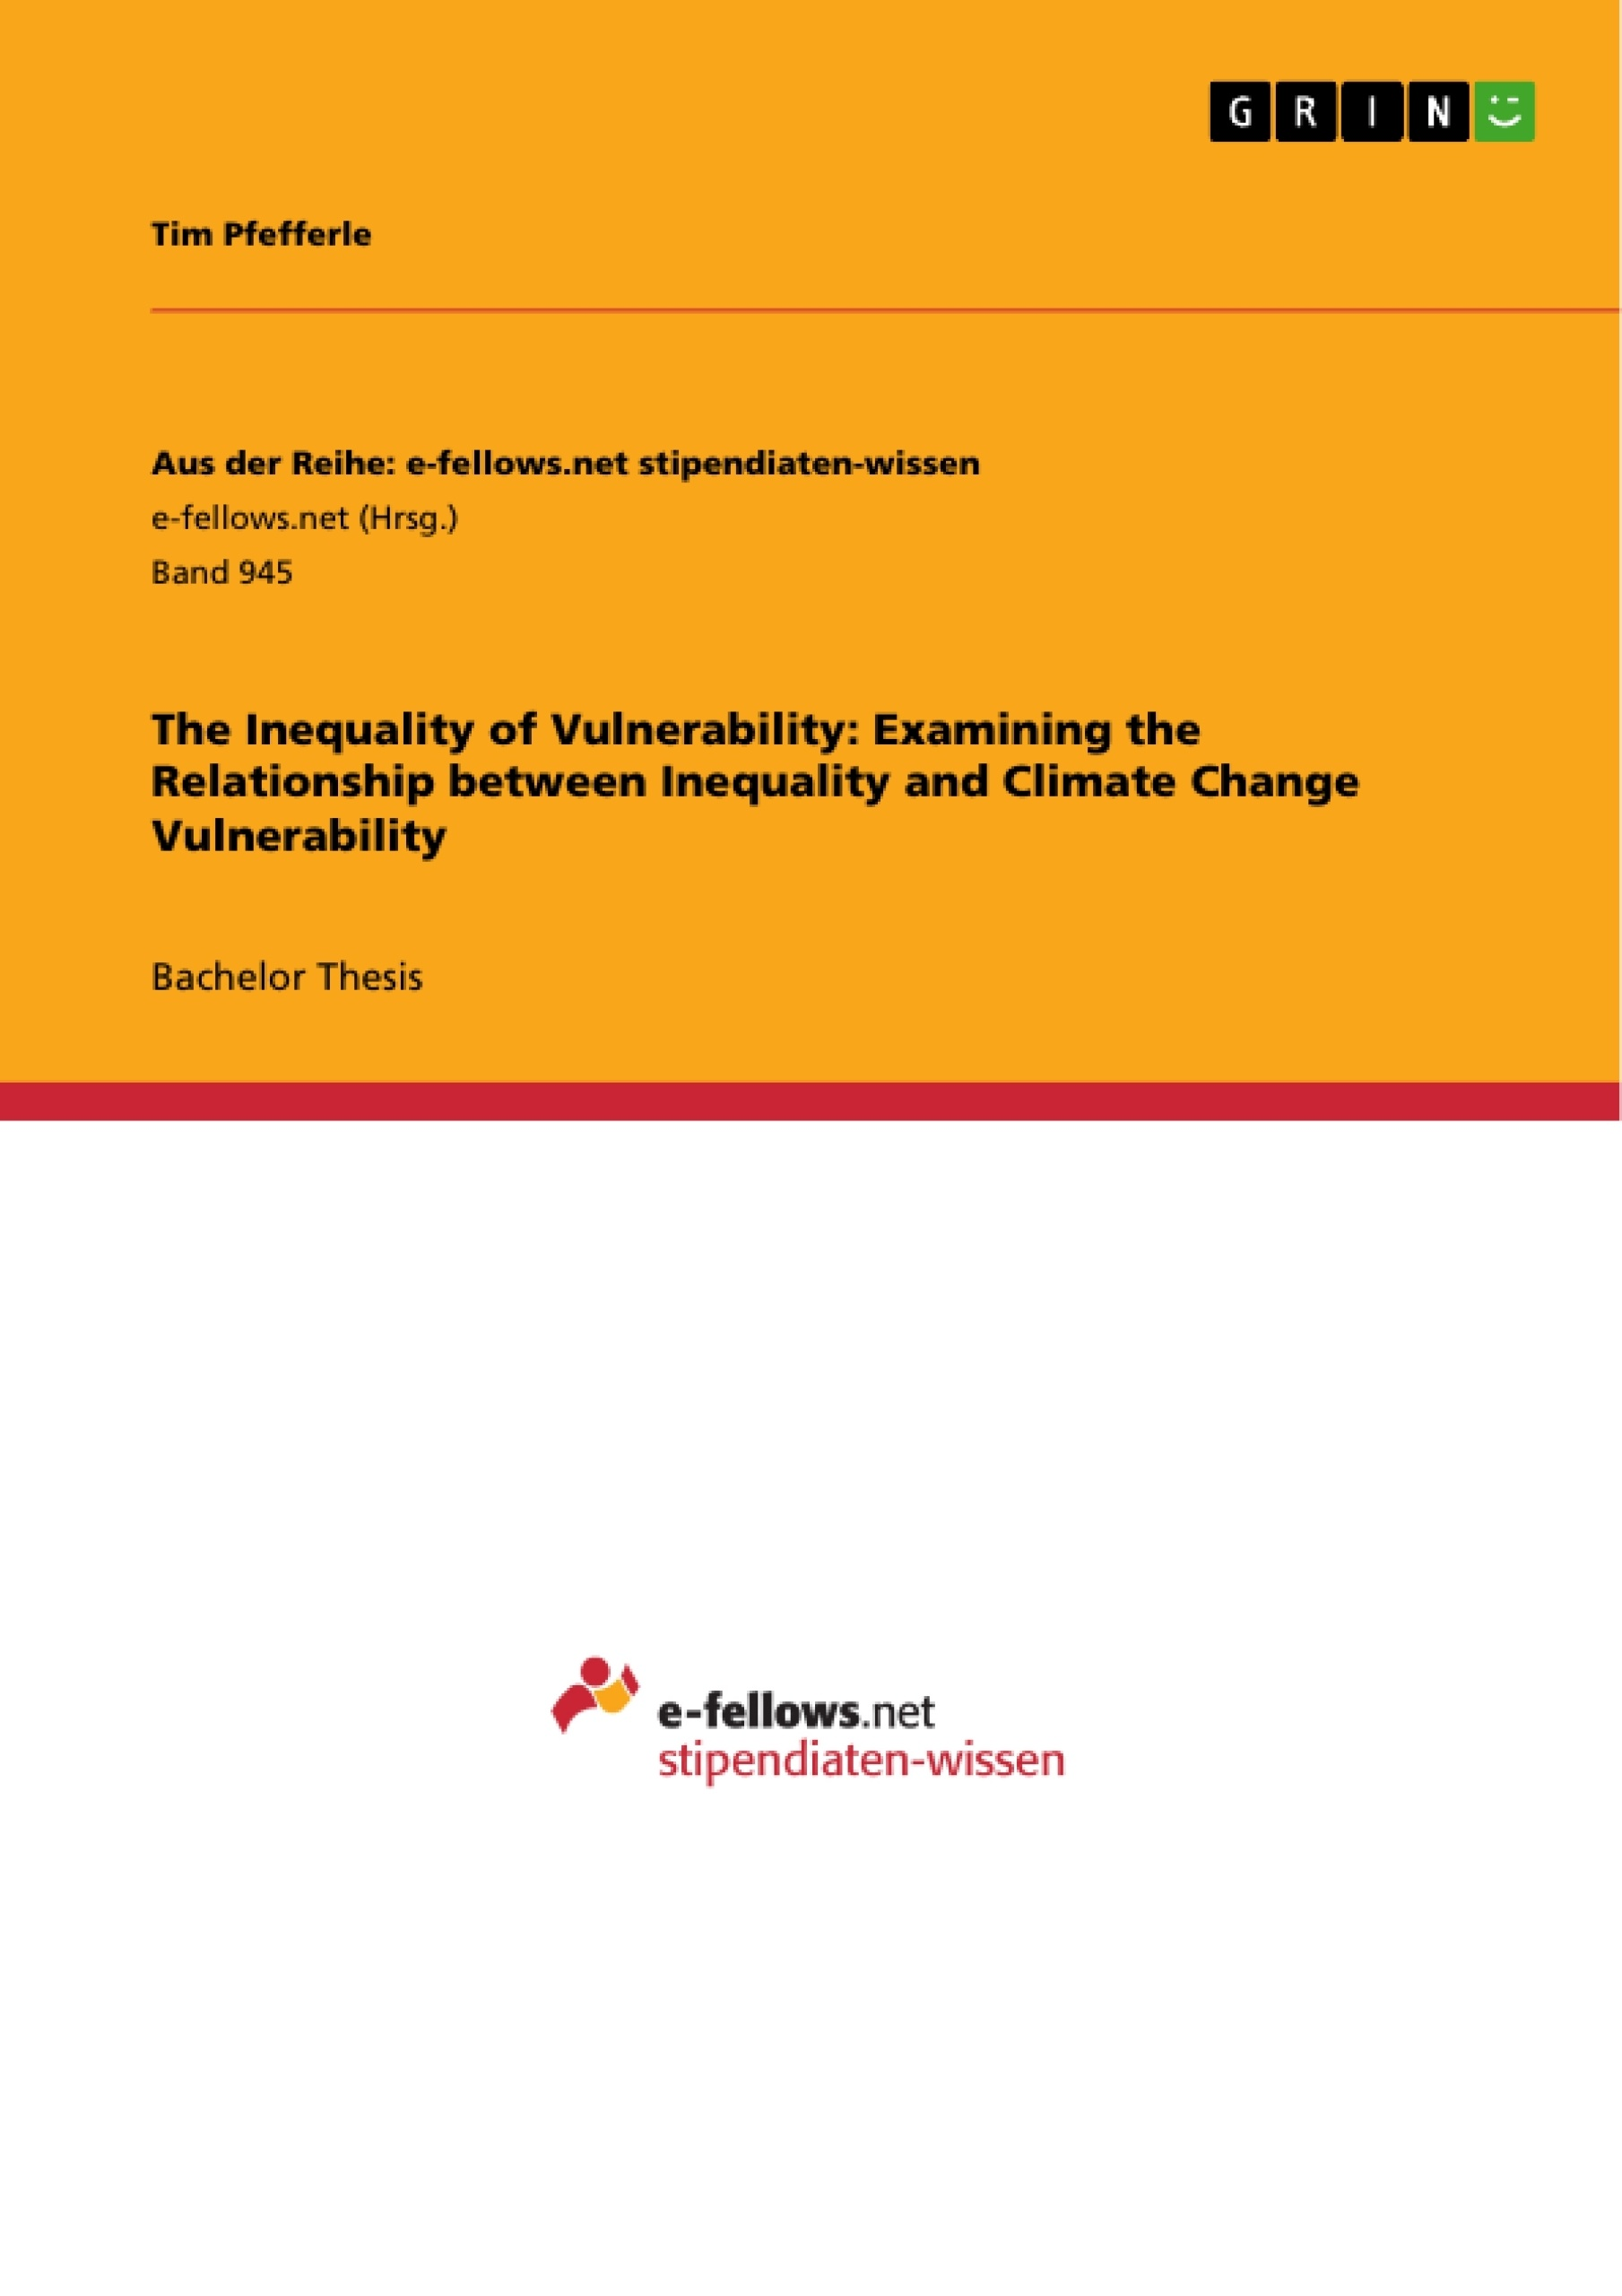 Title: The Inequality of Vulnerability: Examining the Relationship between Inequality and Climate Change Vulnerability